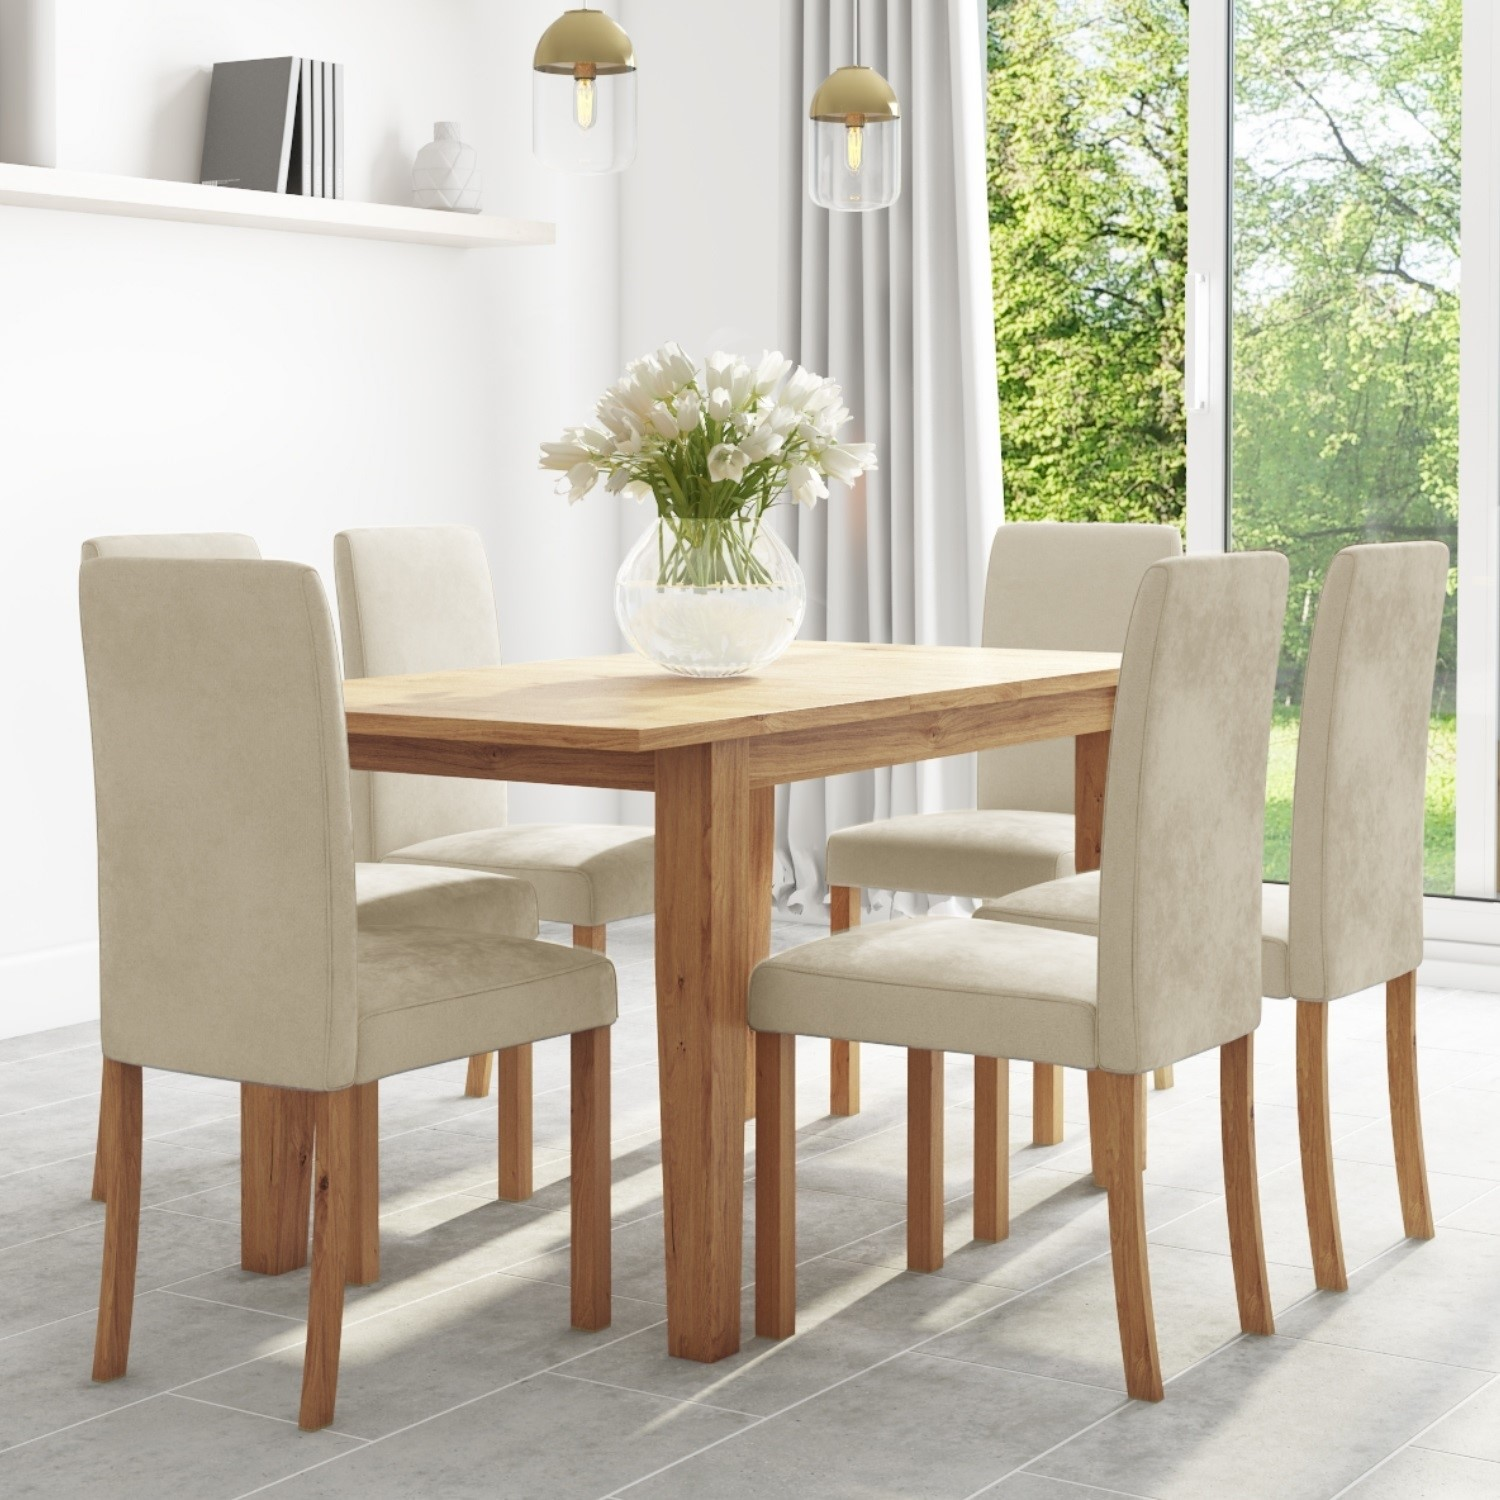 Picture of: Oak Extendable Dining Table 6 Cream Velvet Chairs New Haven Bun Nha027 76624 Ebay